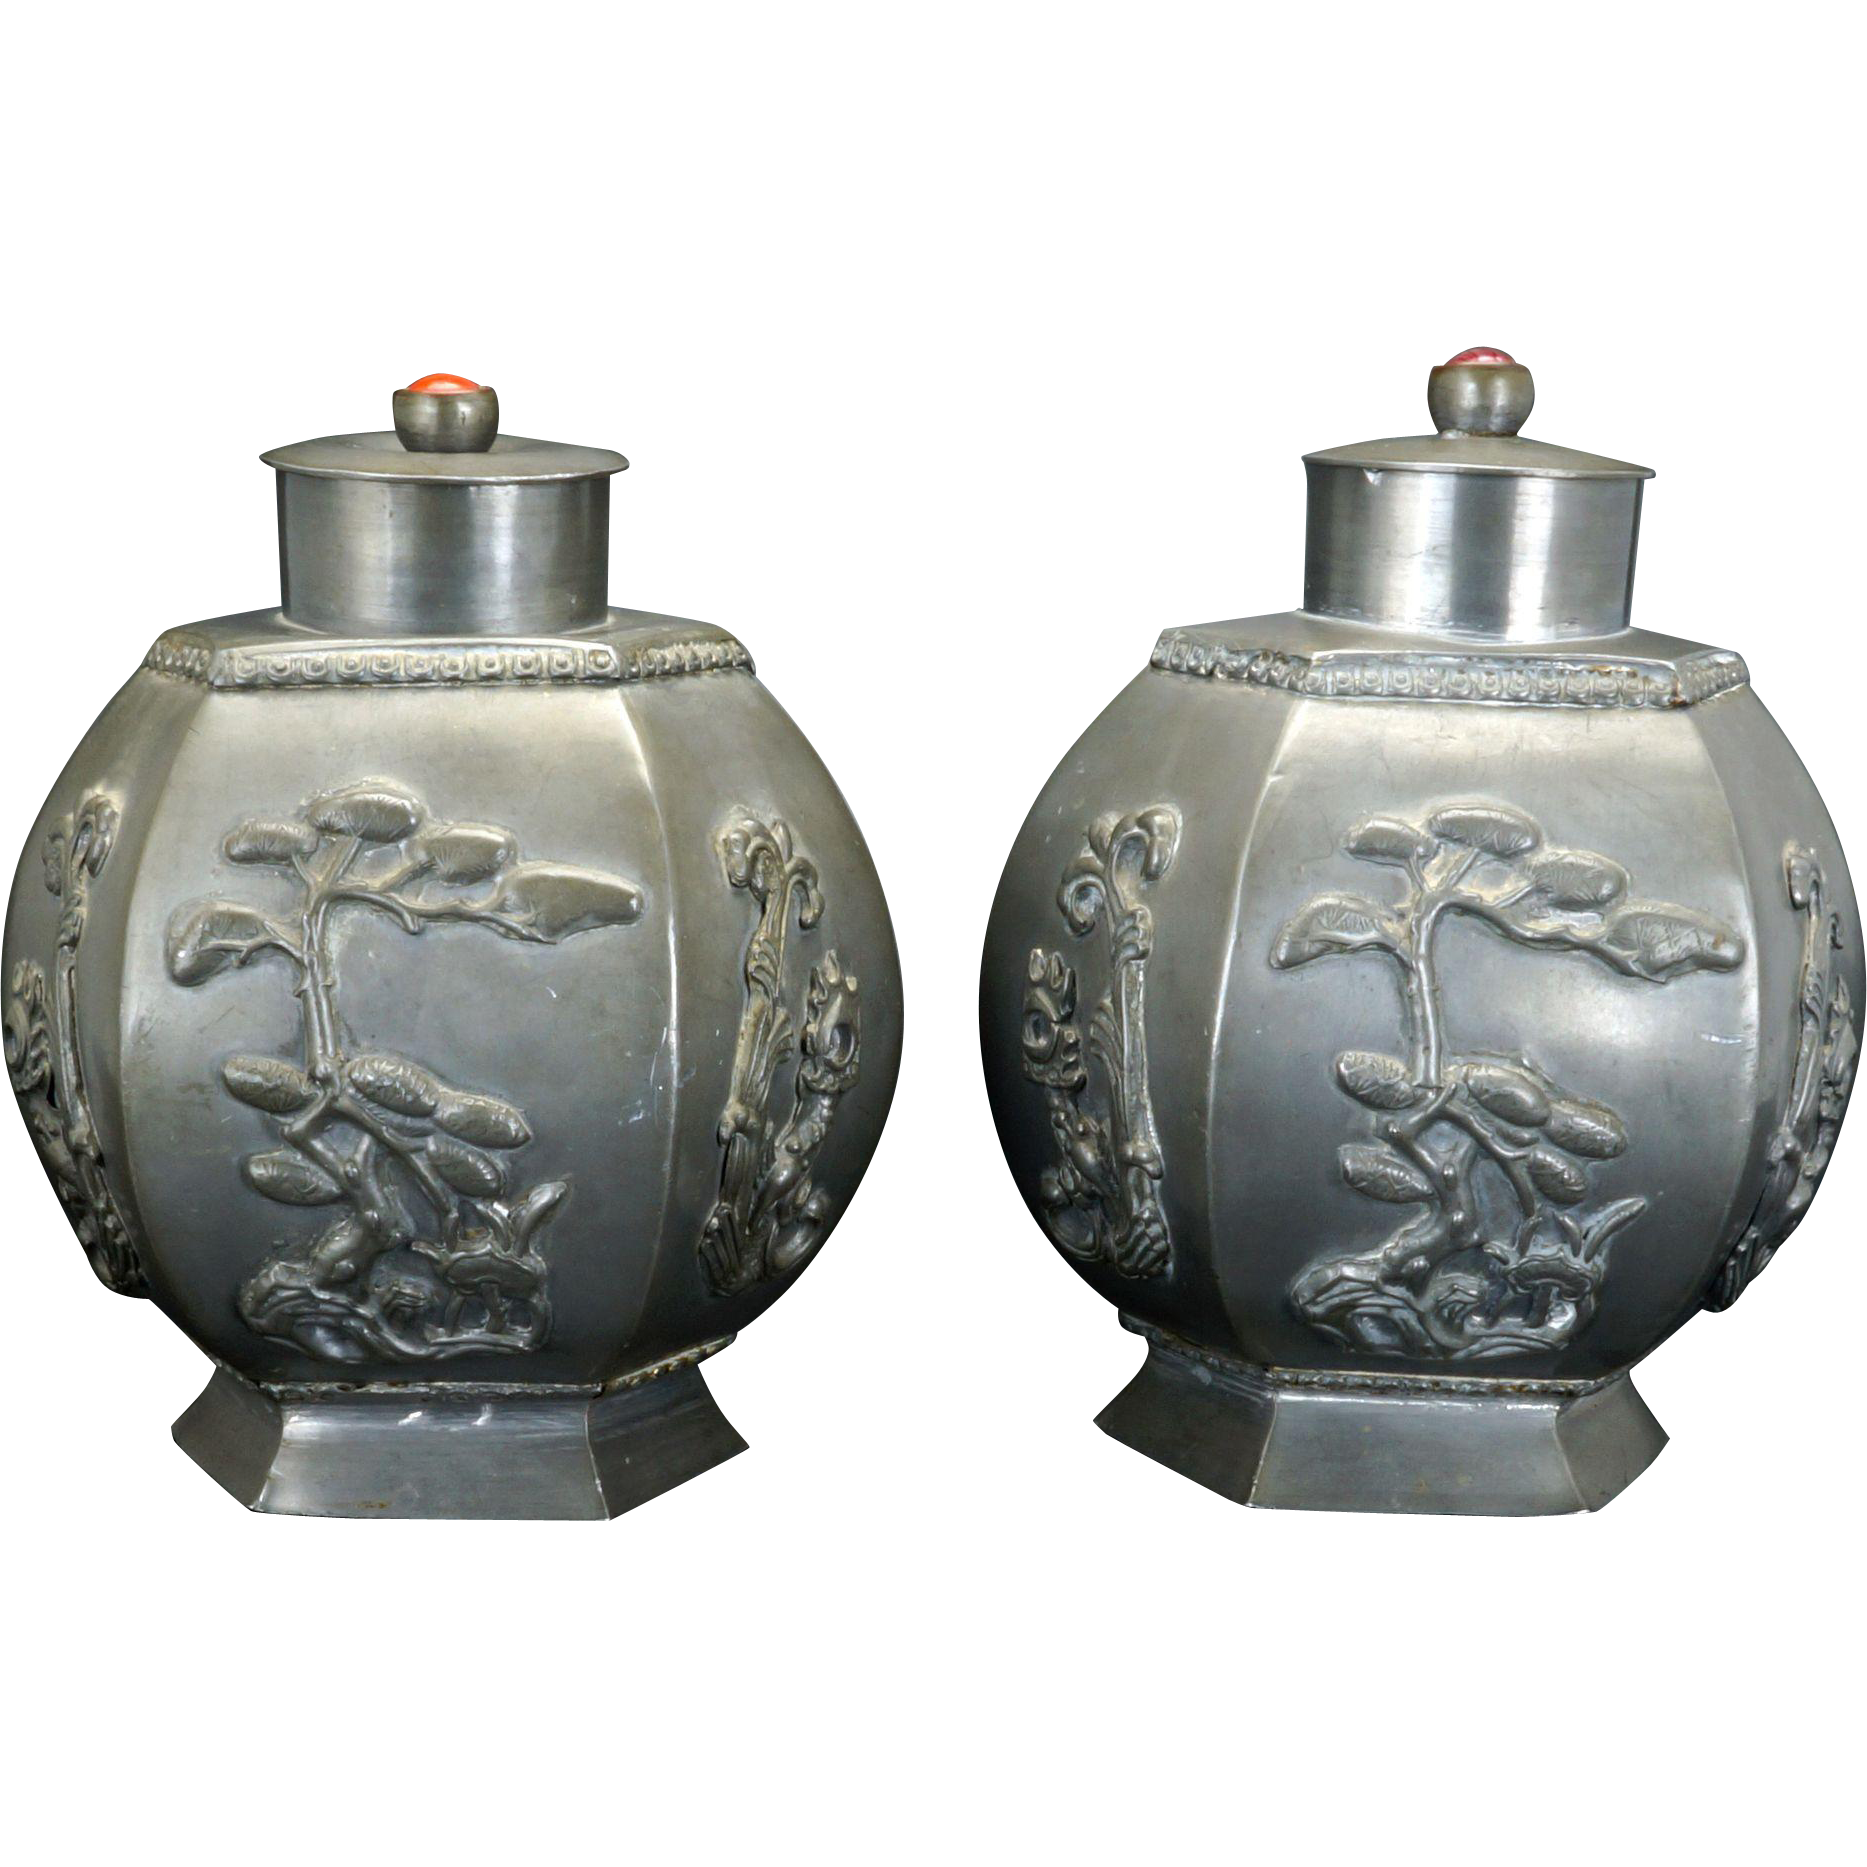 Matched pair of Chinese metal tea caddies with molded auspicious symbols and carnelian beads circa 1900